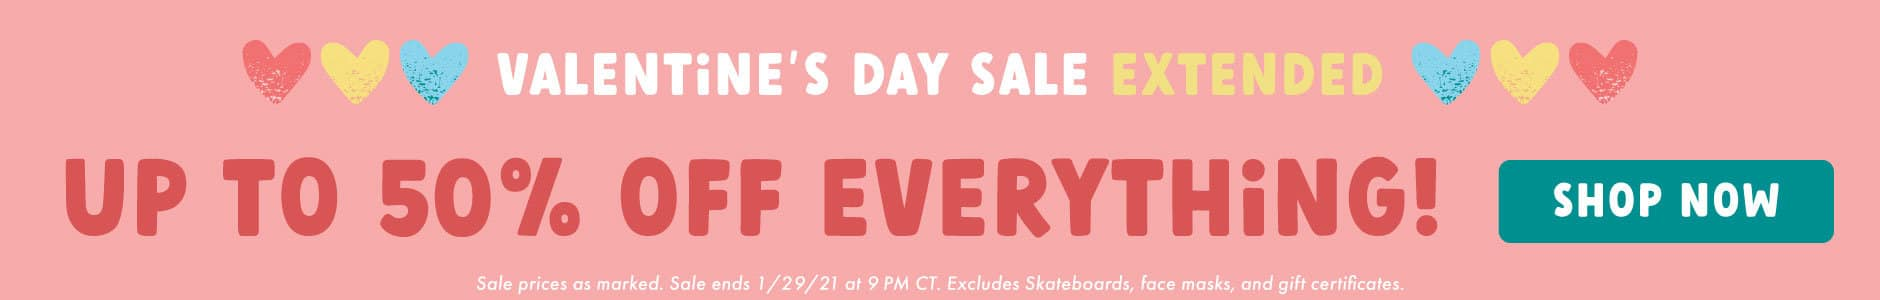 Valentine's Day Sale - up to 50% off everything!